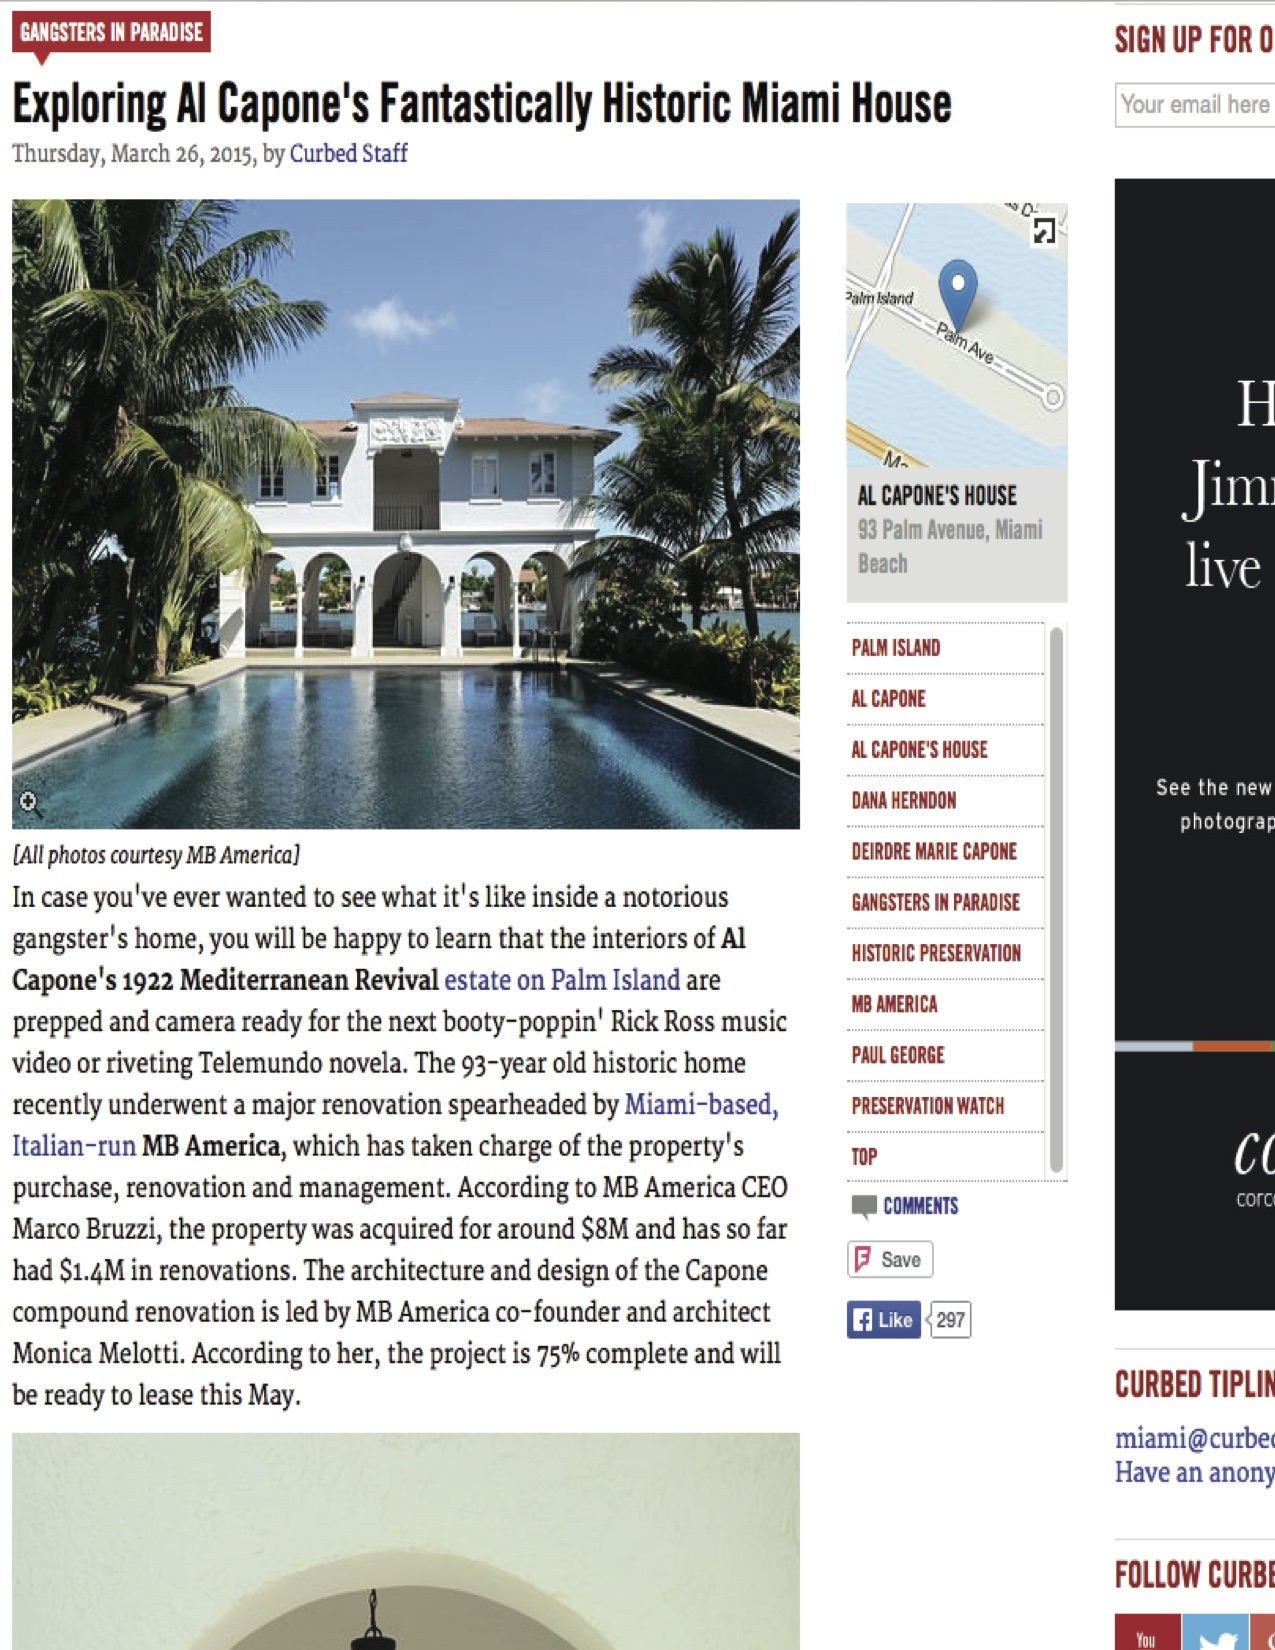 """<p><strong>Curbed Miami</strong><a href=""""http://miami.curbed.com/archives/2015/03/26/al-capone-house-media-tour.php"""" target=""""_blank"""">View Article →</a></p>"""